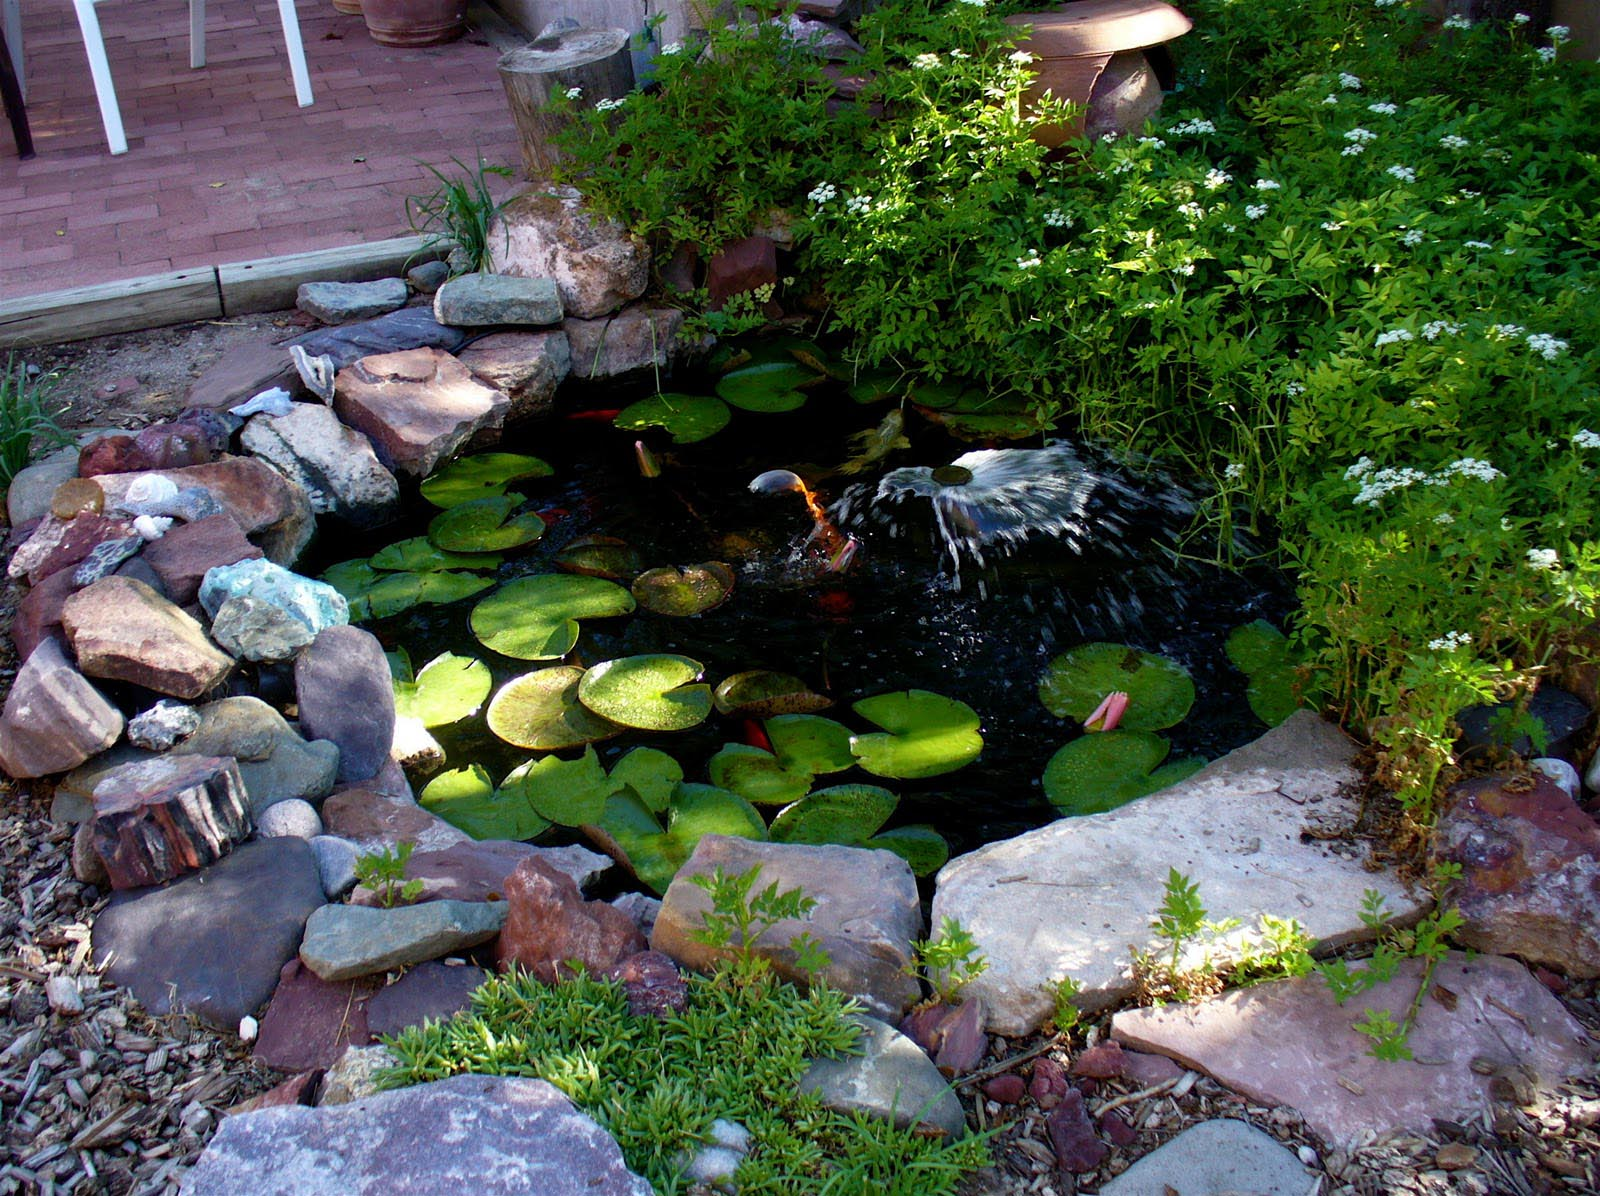 Garden fish pond ideas backyard design ideas for Making a garden pond